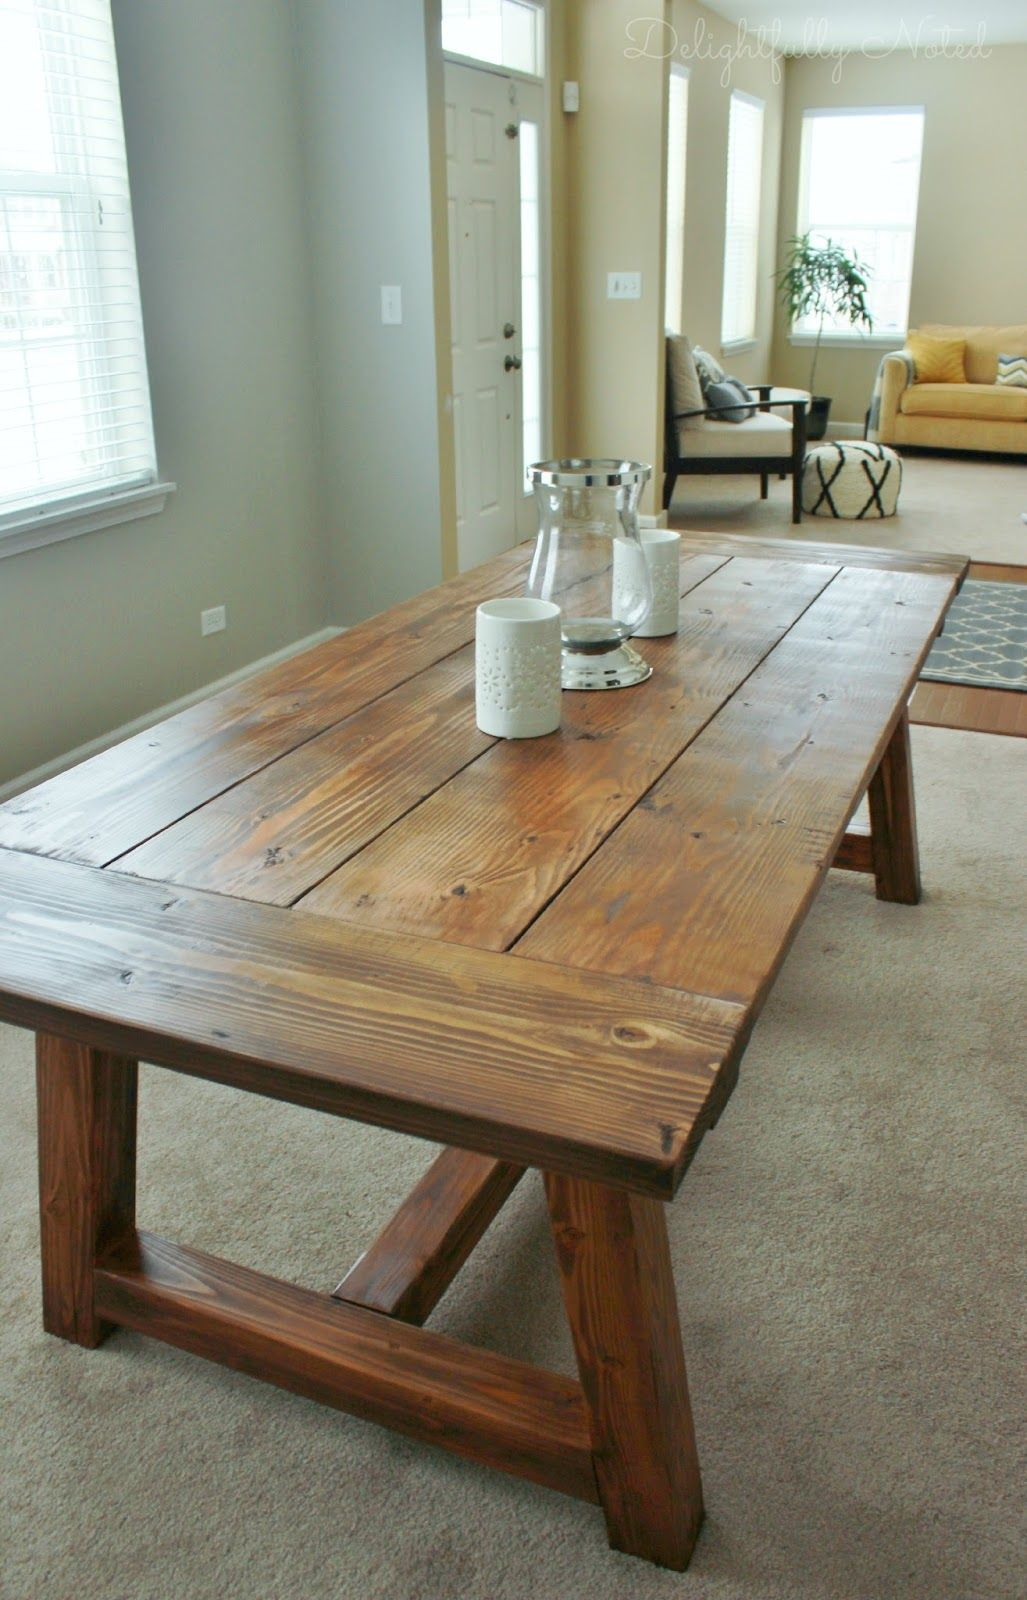 Beau DIY Farmhouse Table Restoration Hardware Knockoff. Farmhouse Dining Room ...